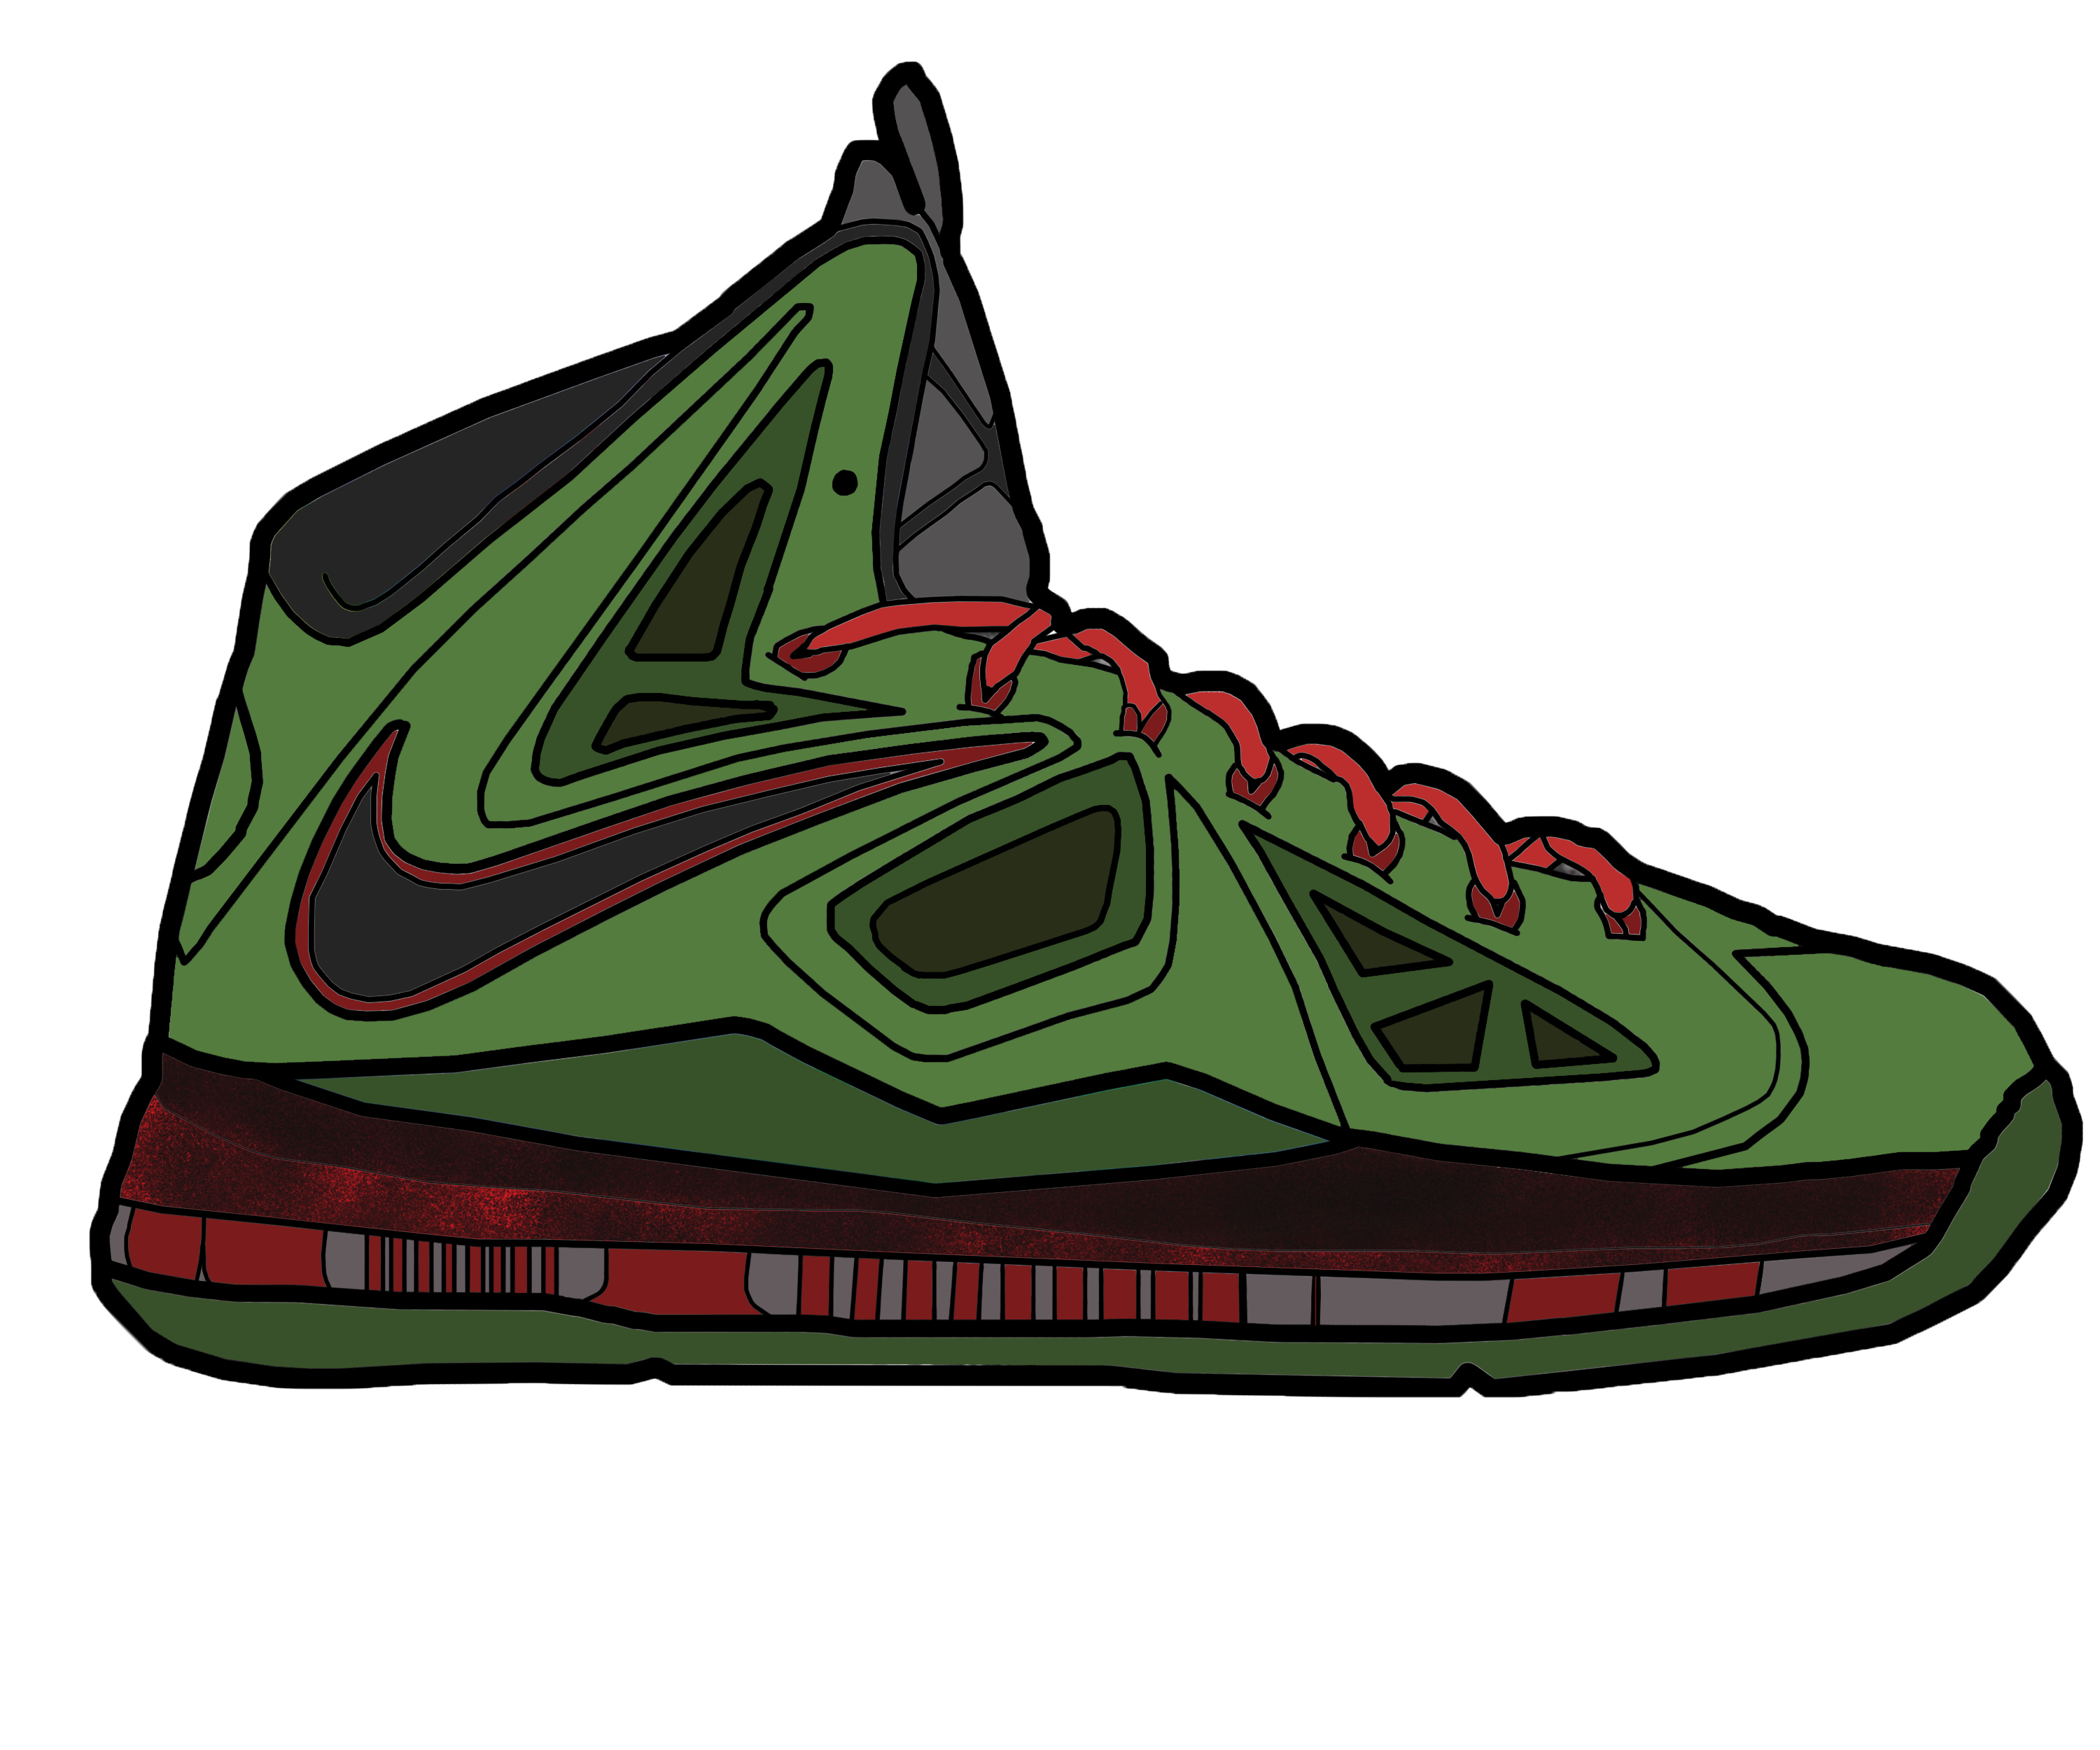 3000x2500 Lebron 10 X Drawing Lebron 10 For Sale Model Aviation